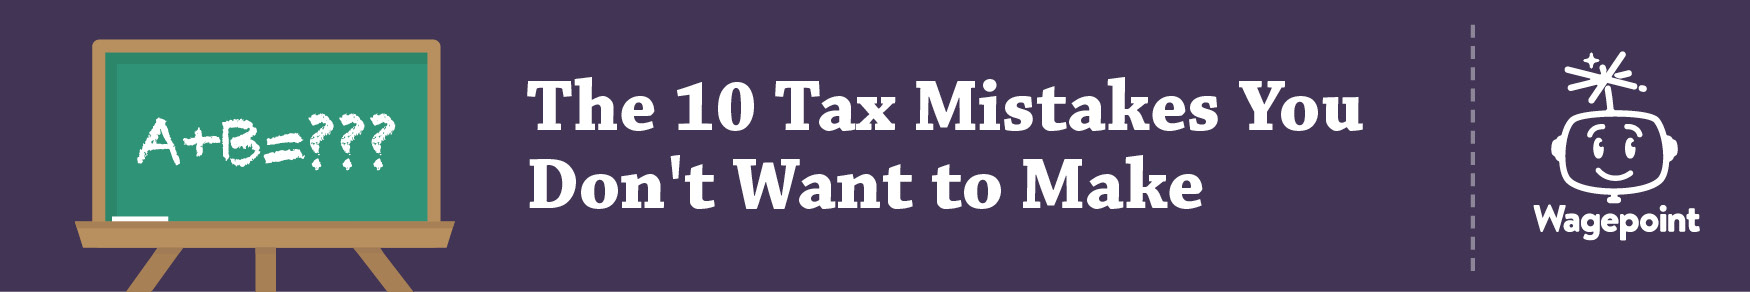 The comprehensive list of small business tax deductions an ounce of prevention is worth a pound of cure a stitch in time saves nine the clichs abound but the truth remains if you want to maximize deductions fandeluxe Choice Image